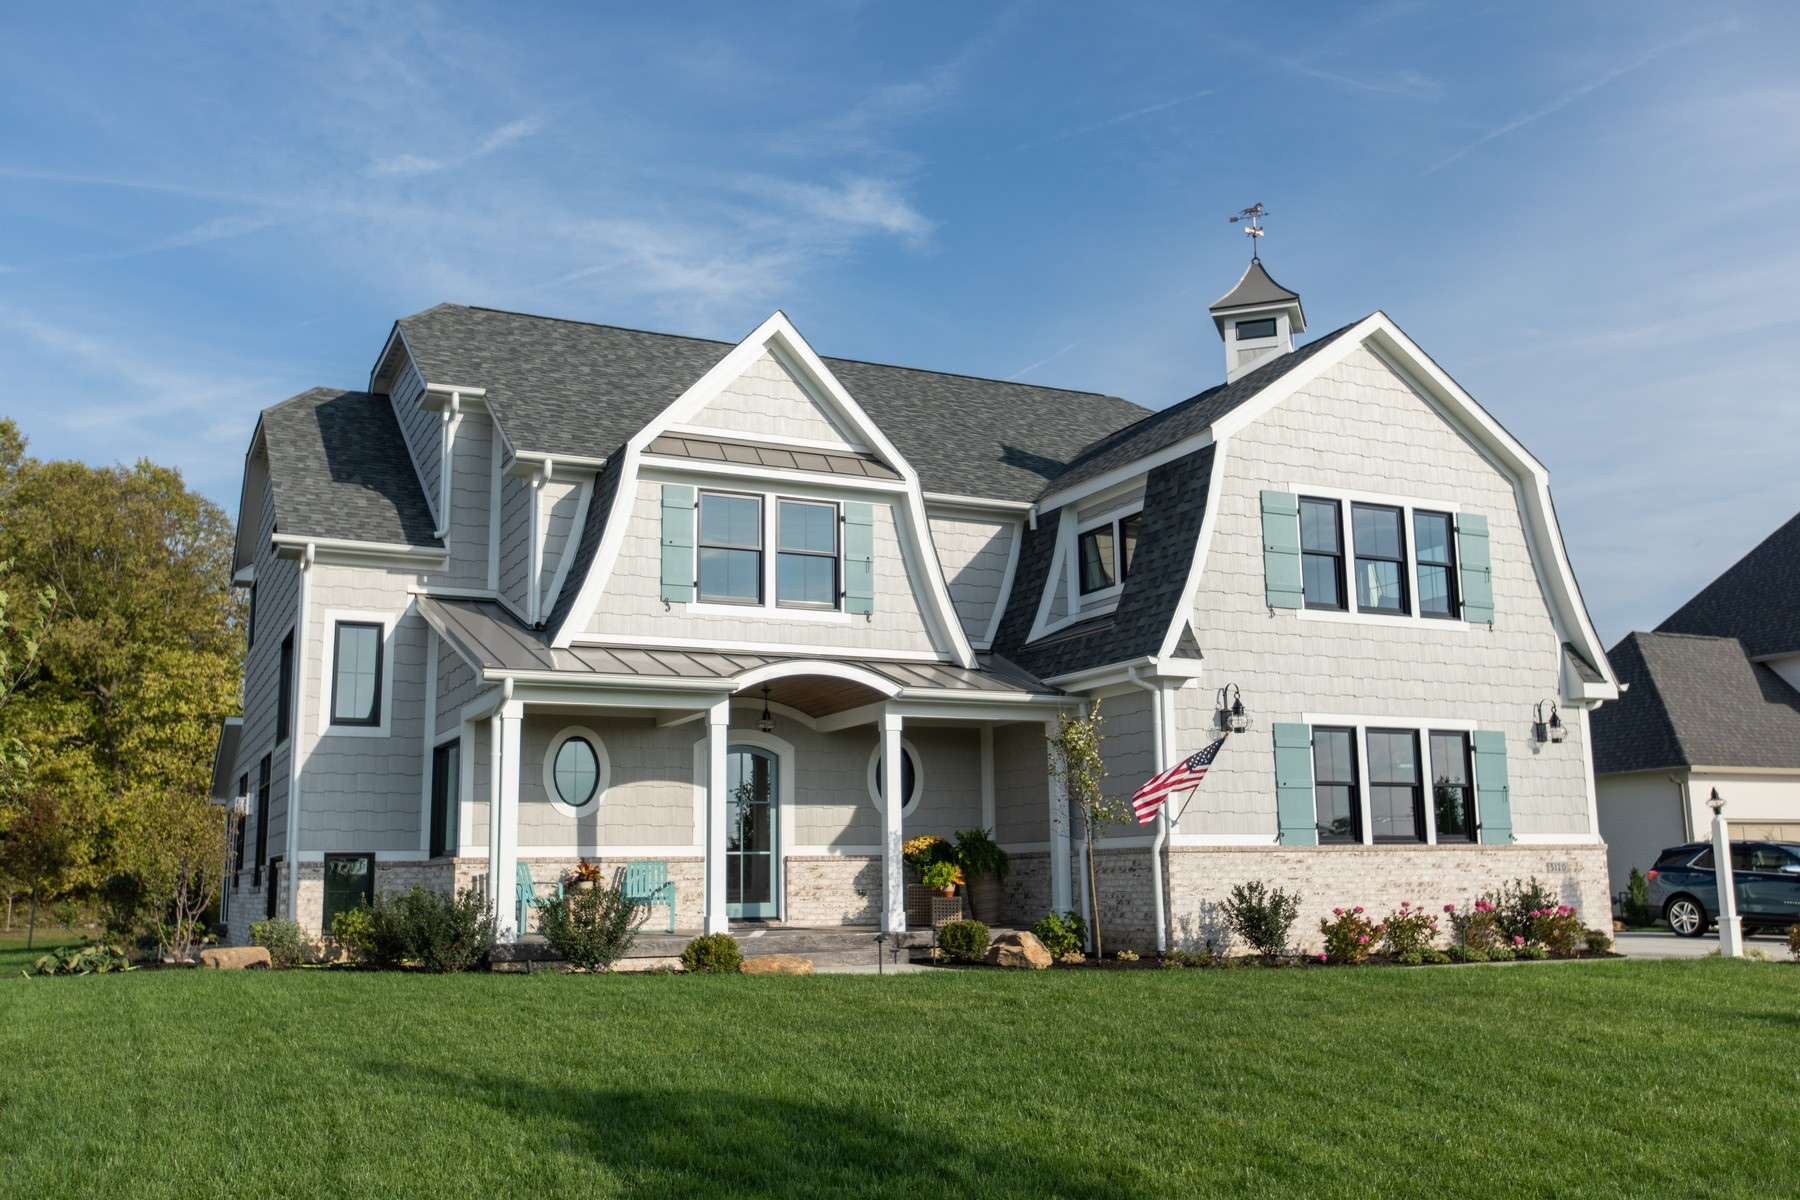 Single Family Homes for Active at Custom Dutch Colonial 5120 Melborne Place Zionsville, Indiana 46077 United States